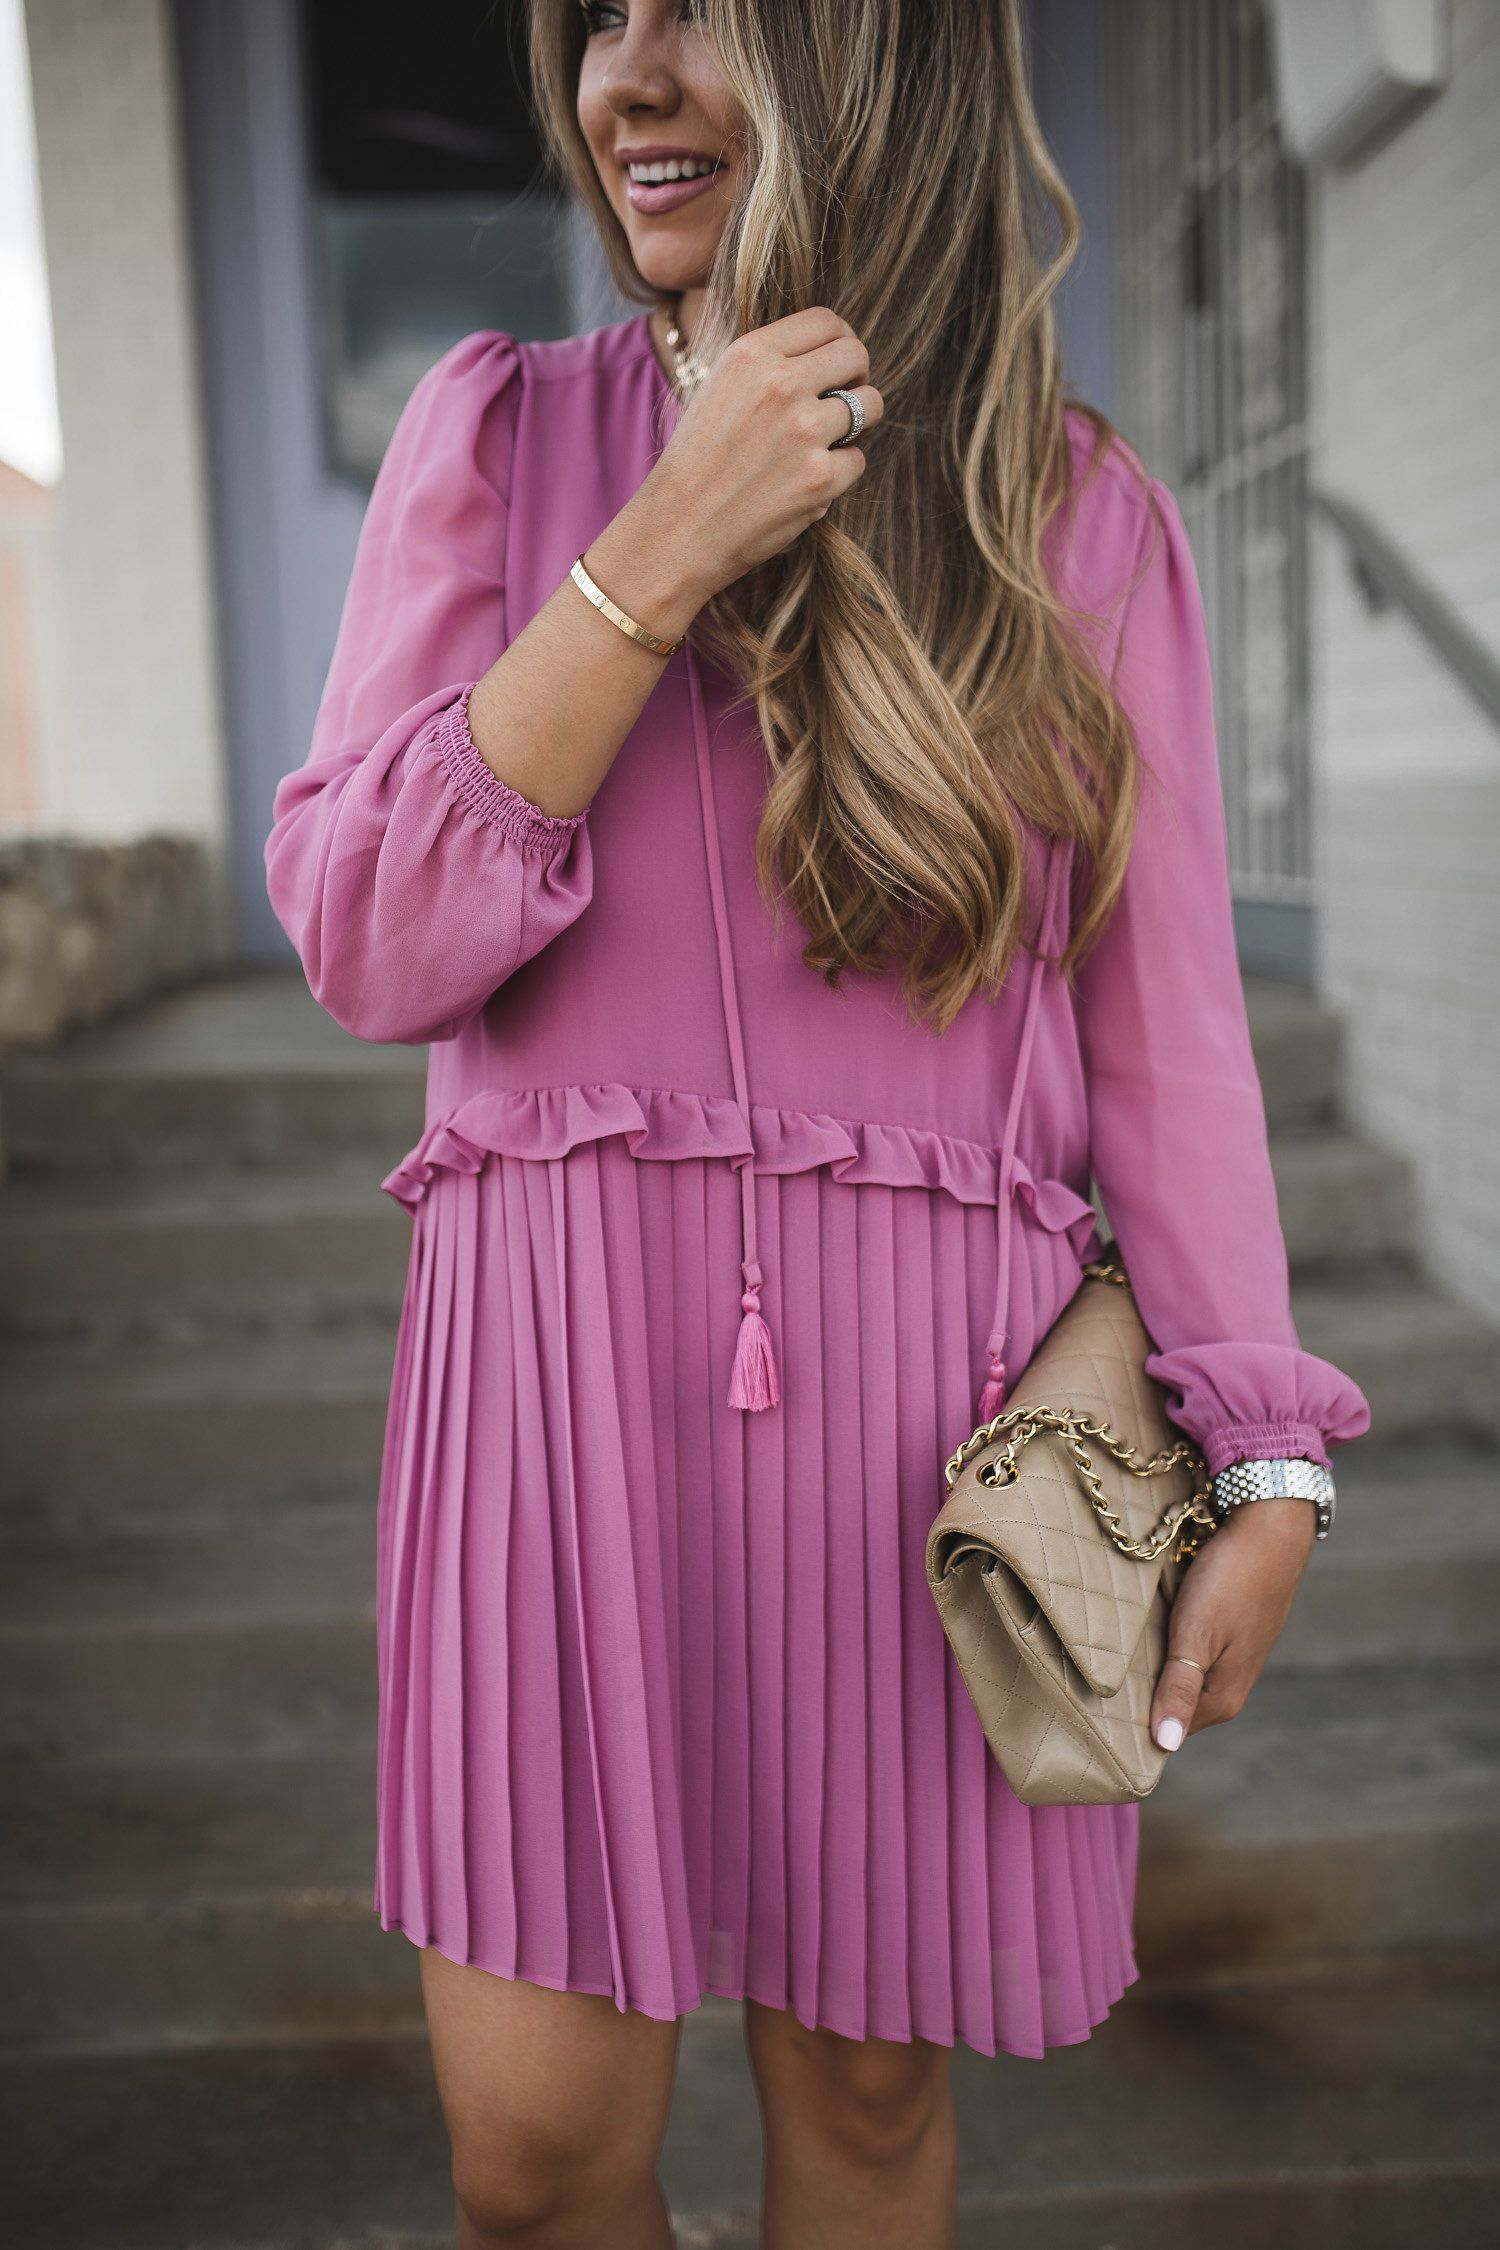 Pink Party Dress | Pink party dresses, Pink parties and Diva